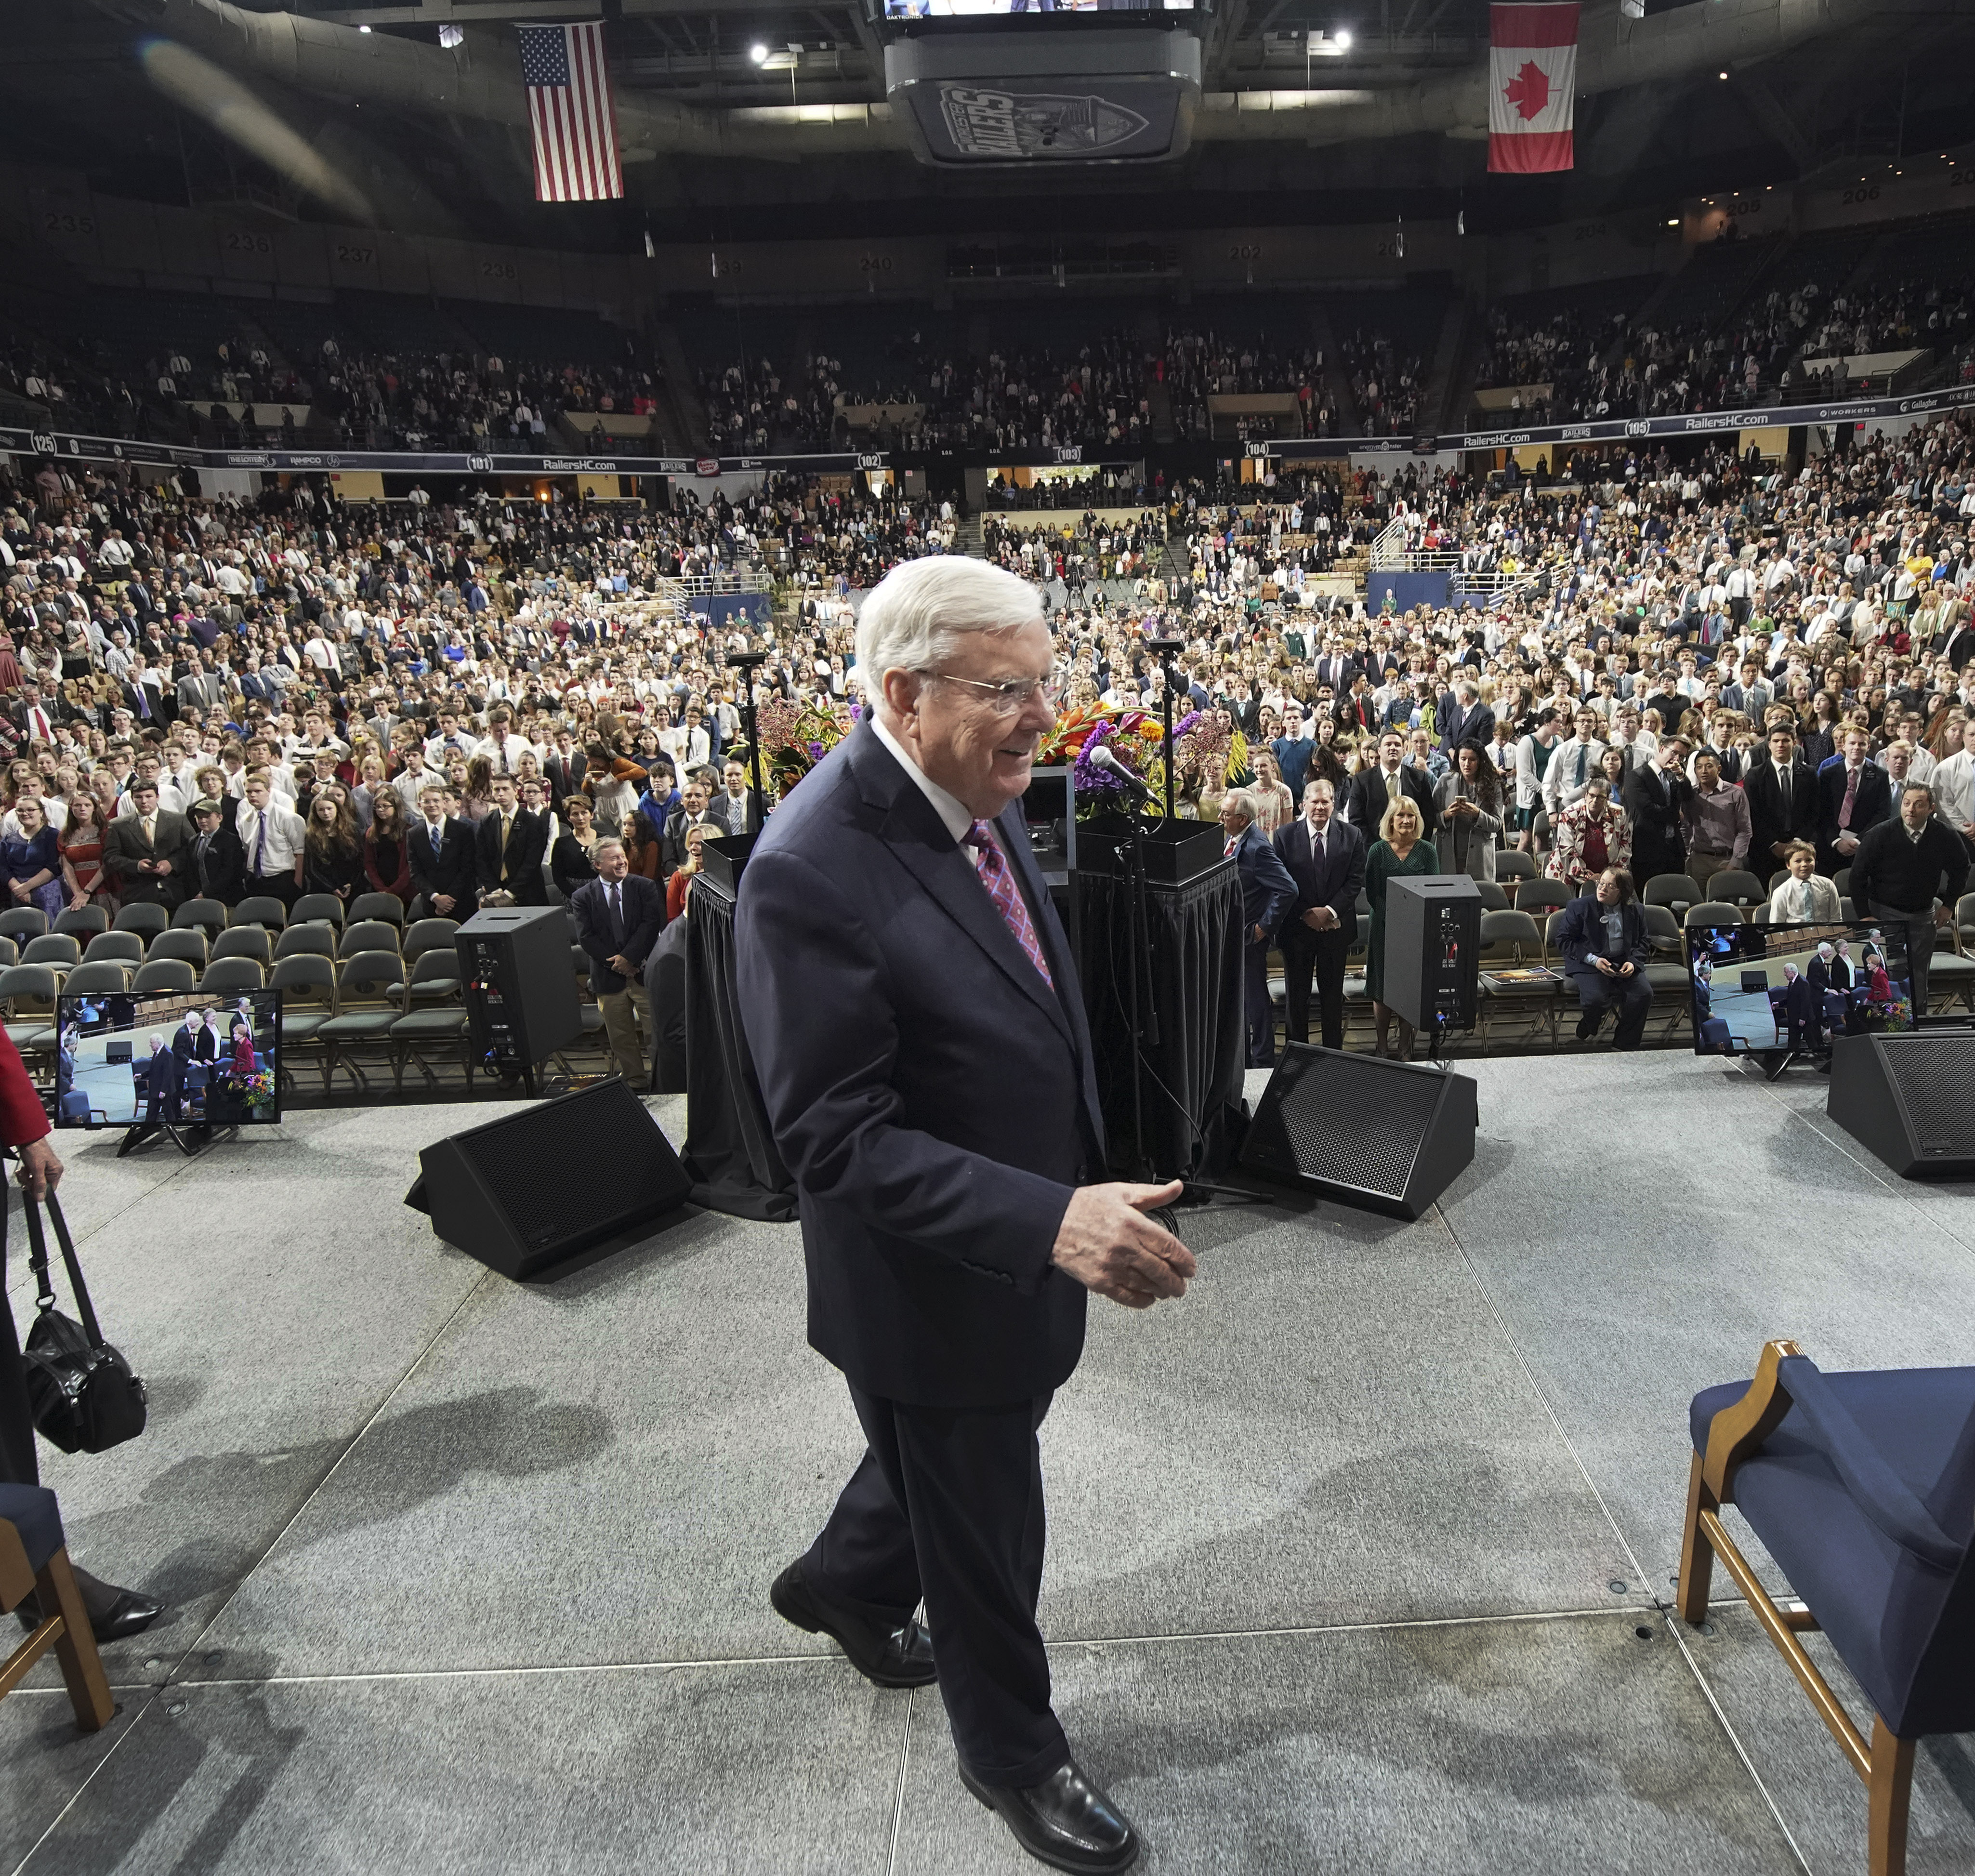 President M. Russell Ballard, acting president of the Quorum of the Twelve Apostles of The Church of Jesus Christ of Latter-day Saints, arrives at a devotional in Worcester, Massachusetts, on Sunday, Oct. 20, 2019.